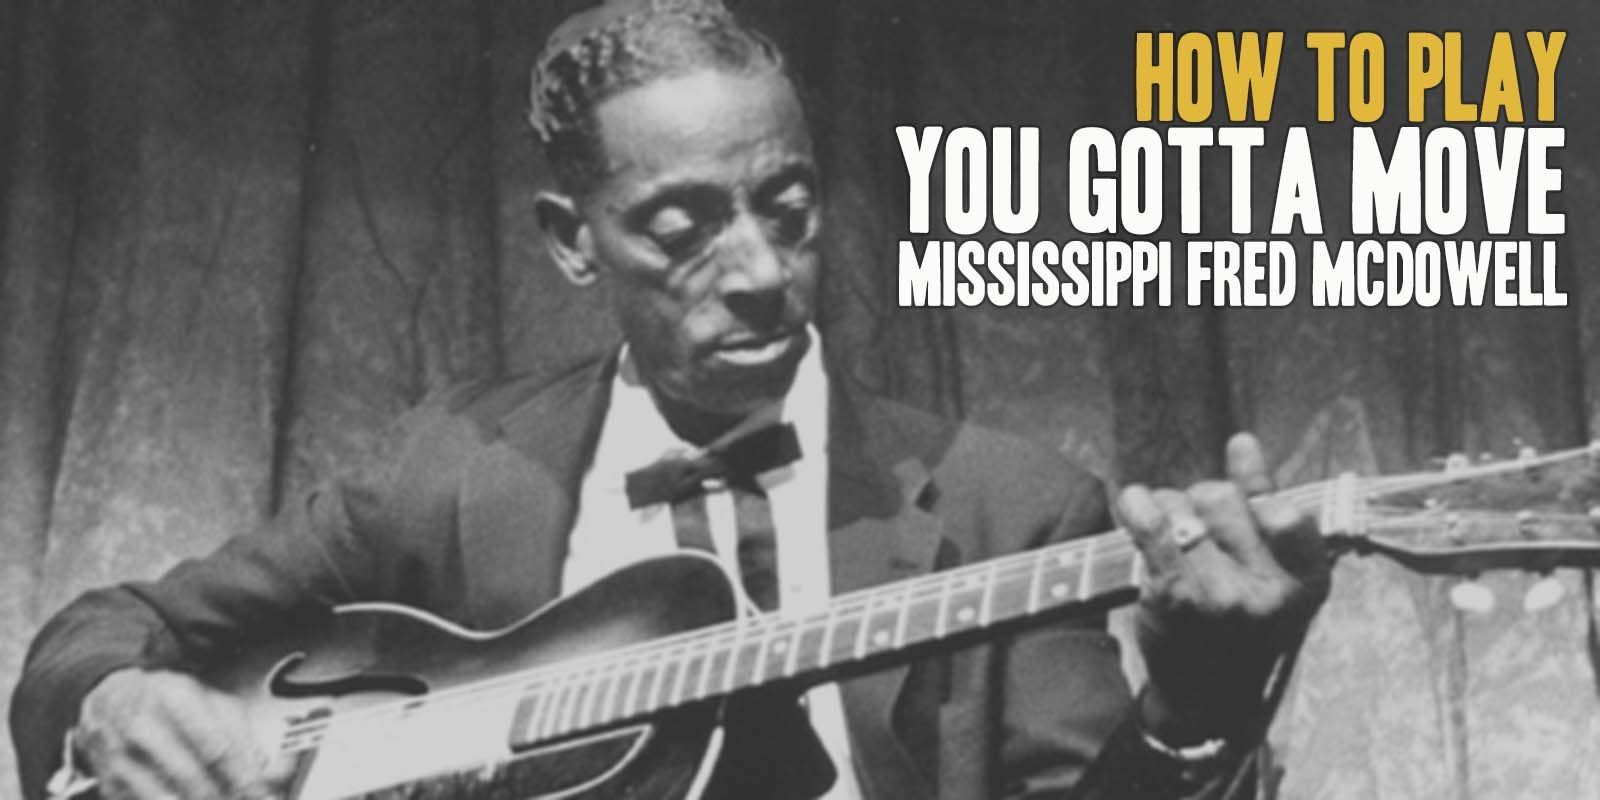 How to play You Gotta Move by Mississippi Fred McDowell. Music Score included in You Gotta Move pdf and You Gotta Move gpx files.